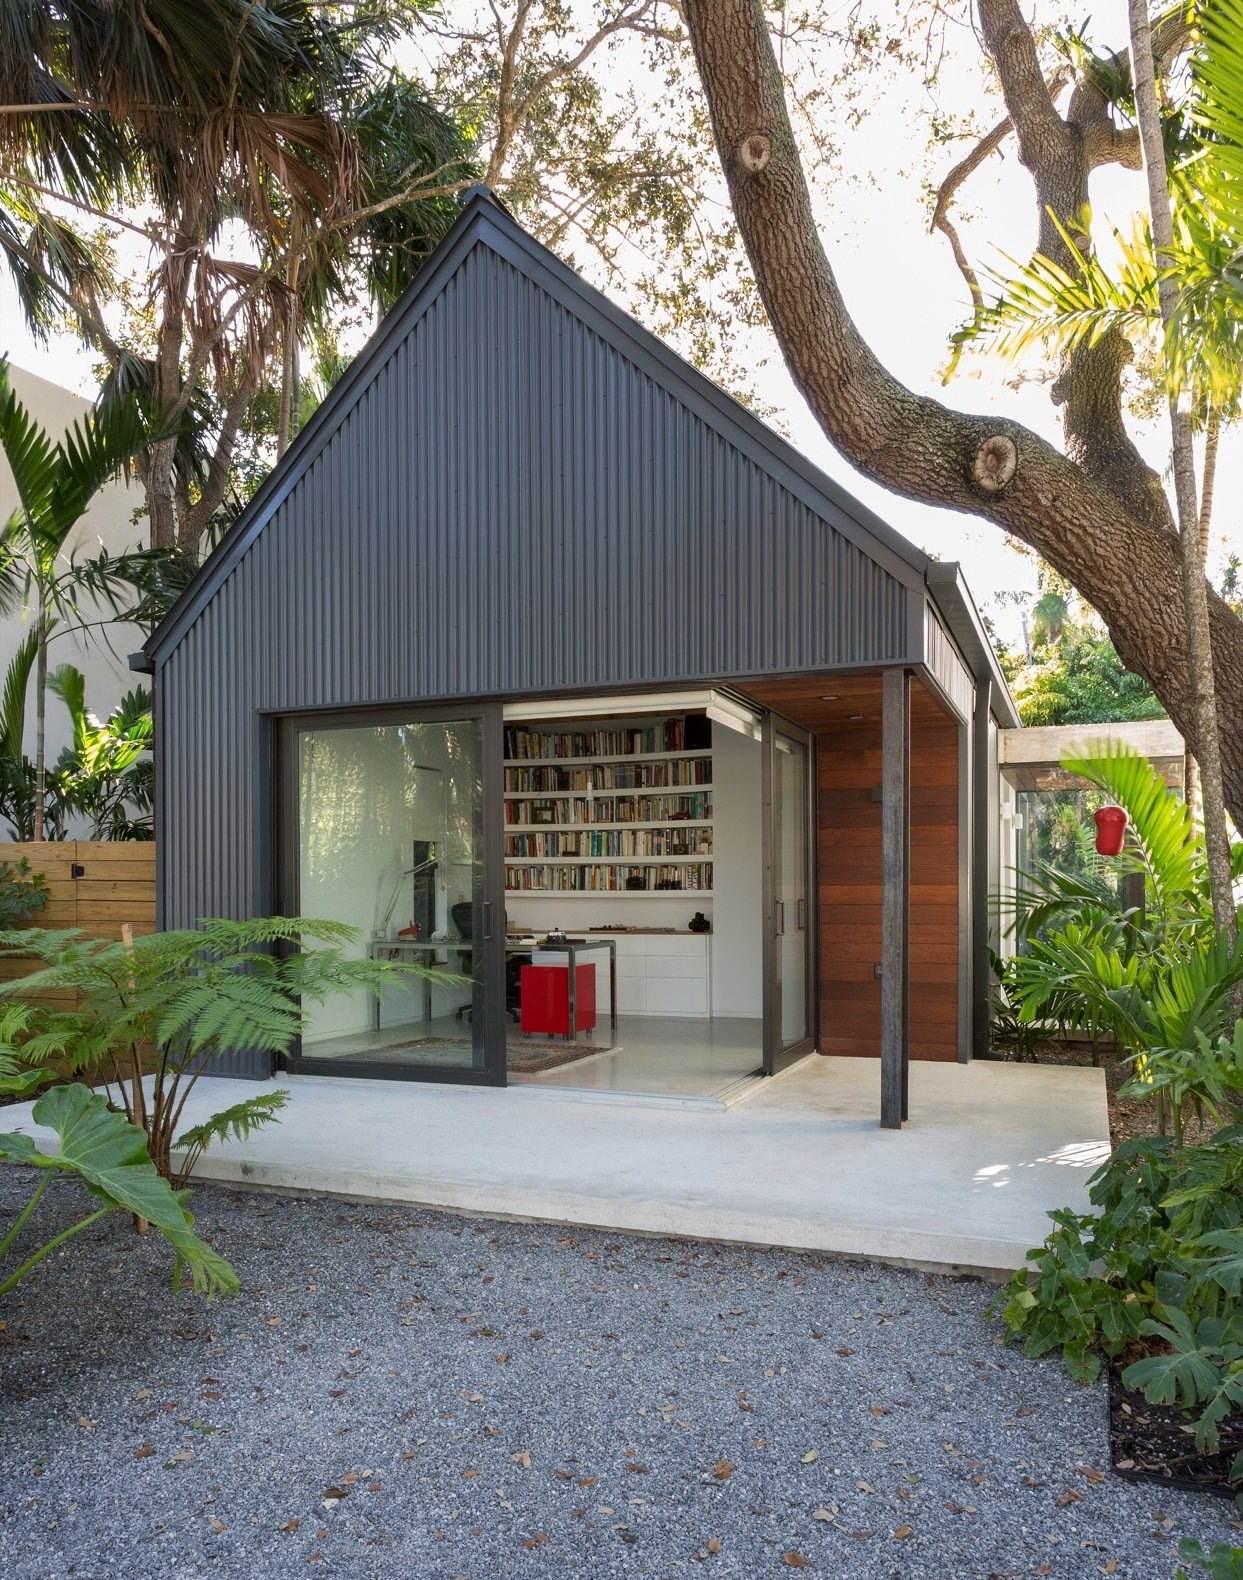 Exterior, House Building Type, Metal Roof Material, Metal Siding Material, and Gable RoofLine The gabled addition is topped with a standing seam metal roof and is clad in vertical corrugated metal siding.    Best Photos from A Minimalist Bungalow in Miami Welcomes a Sleek New Addition